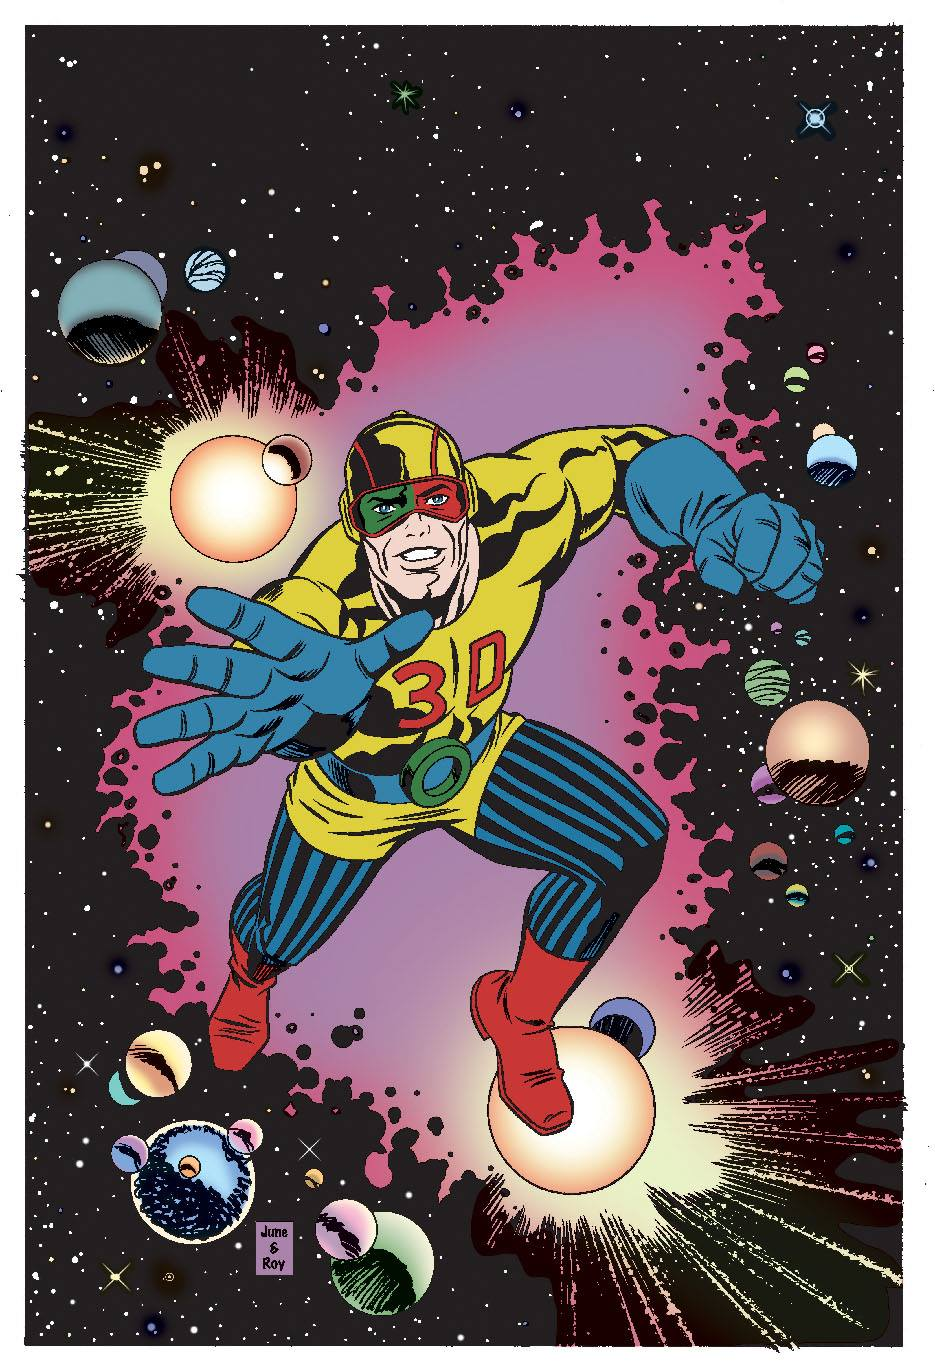 Kirby's 1950s character Captain 3D by June Brigman